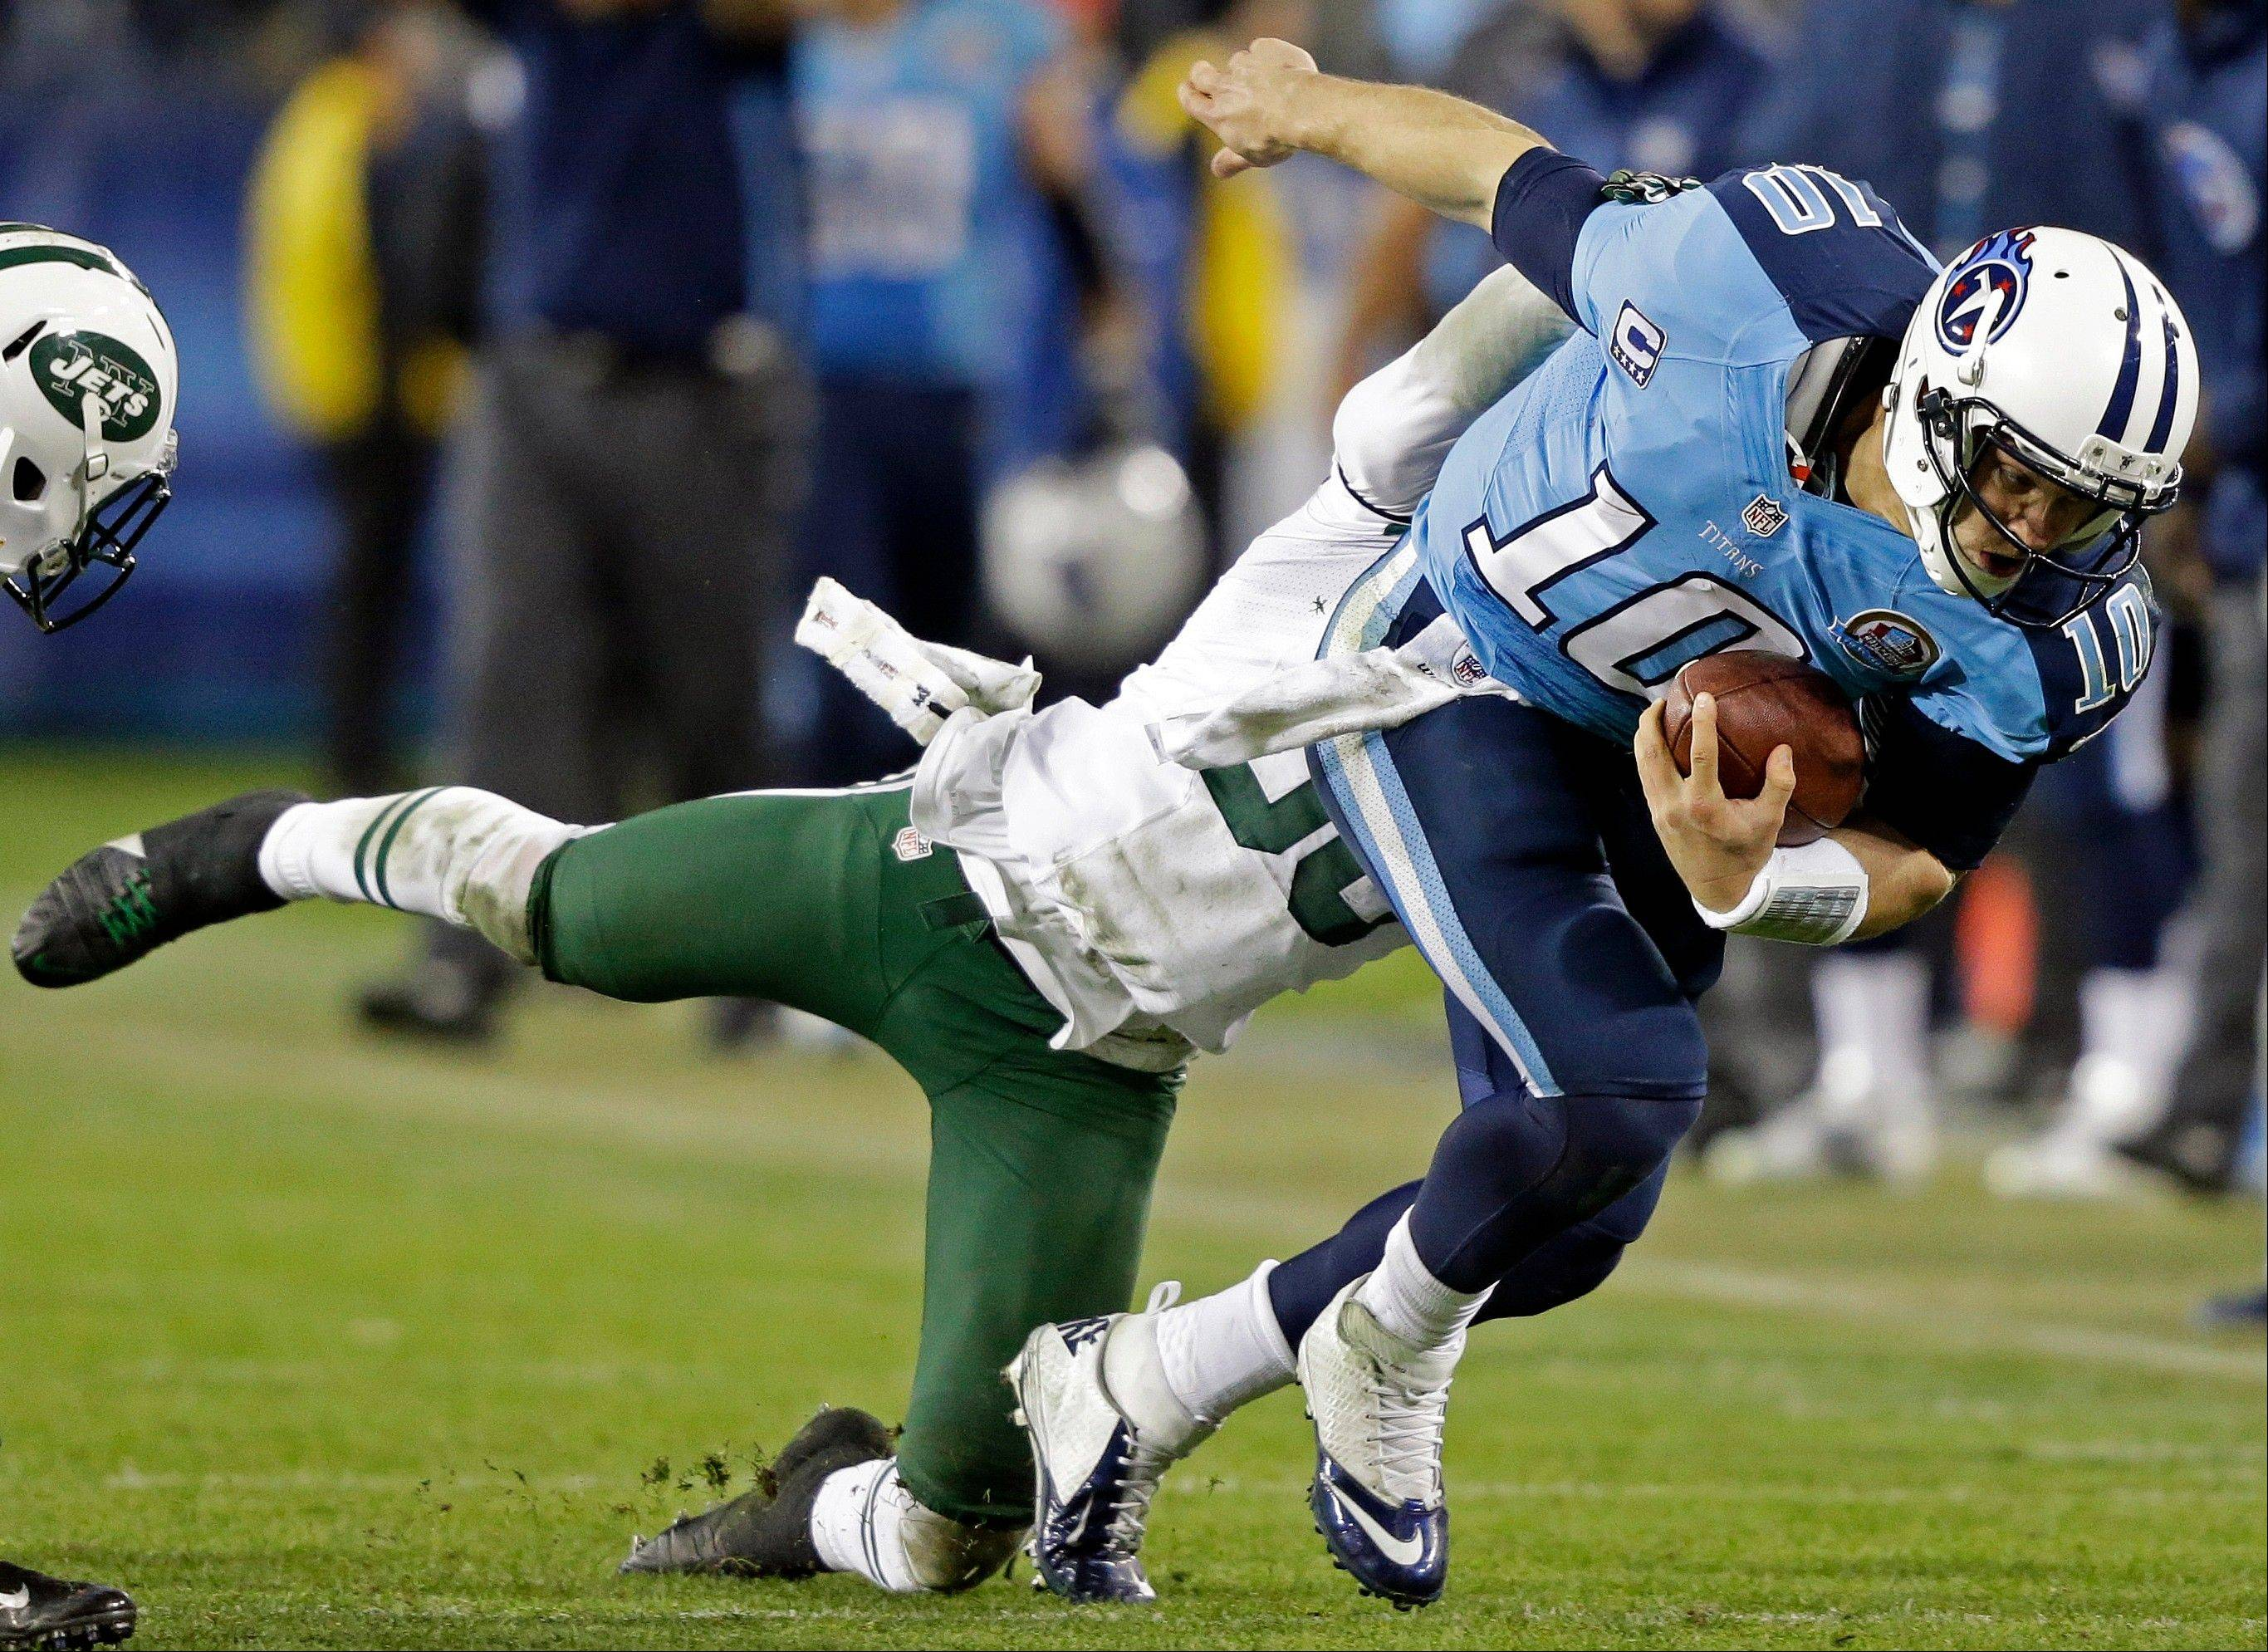 Tennessee Titans quarterback Jake Locker (10) is tackled by New York Jets free safety LaRon Landry (30) in the third quarter of an NFL football game, Monday, Dec. 17, 2012, in Nashville, Tenn.